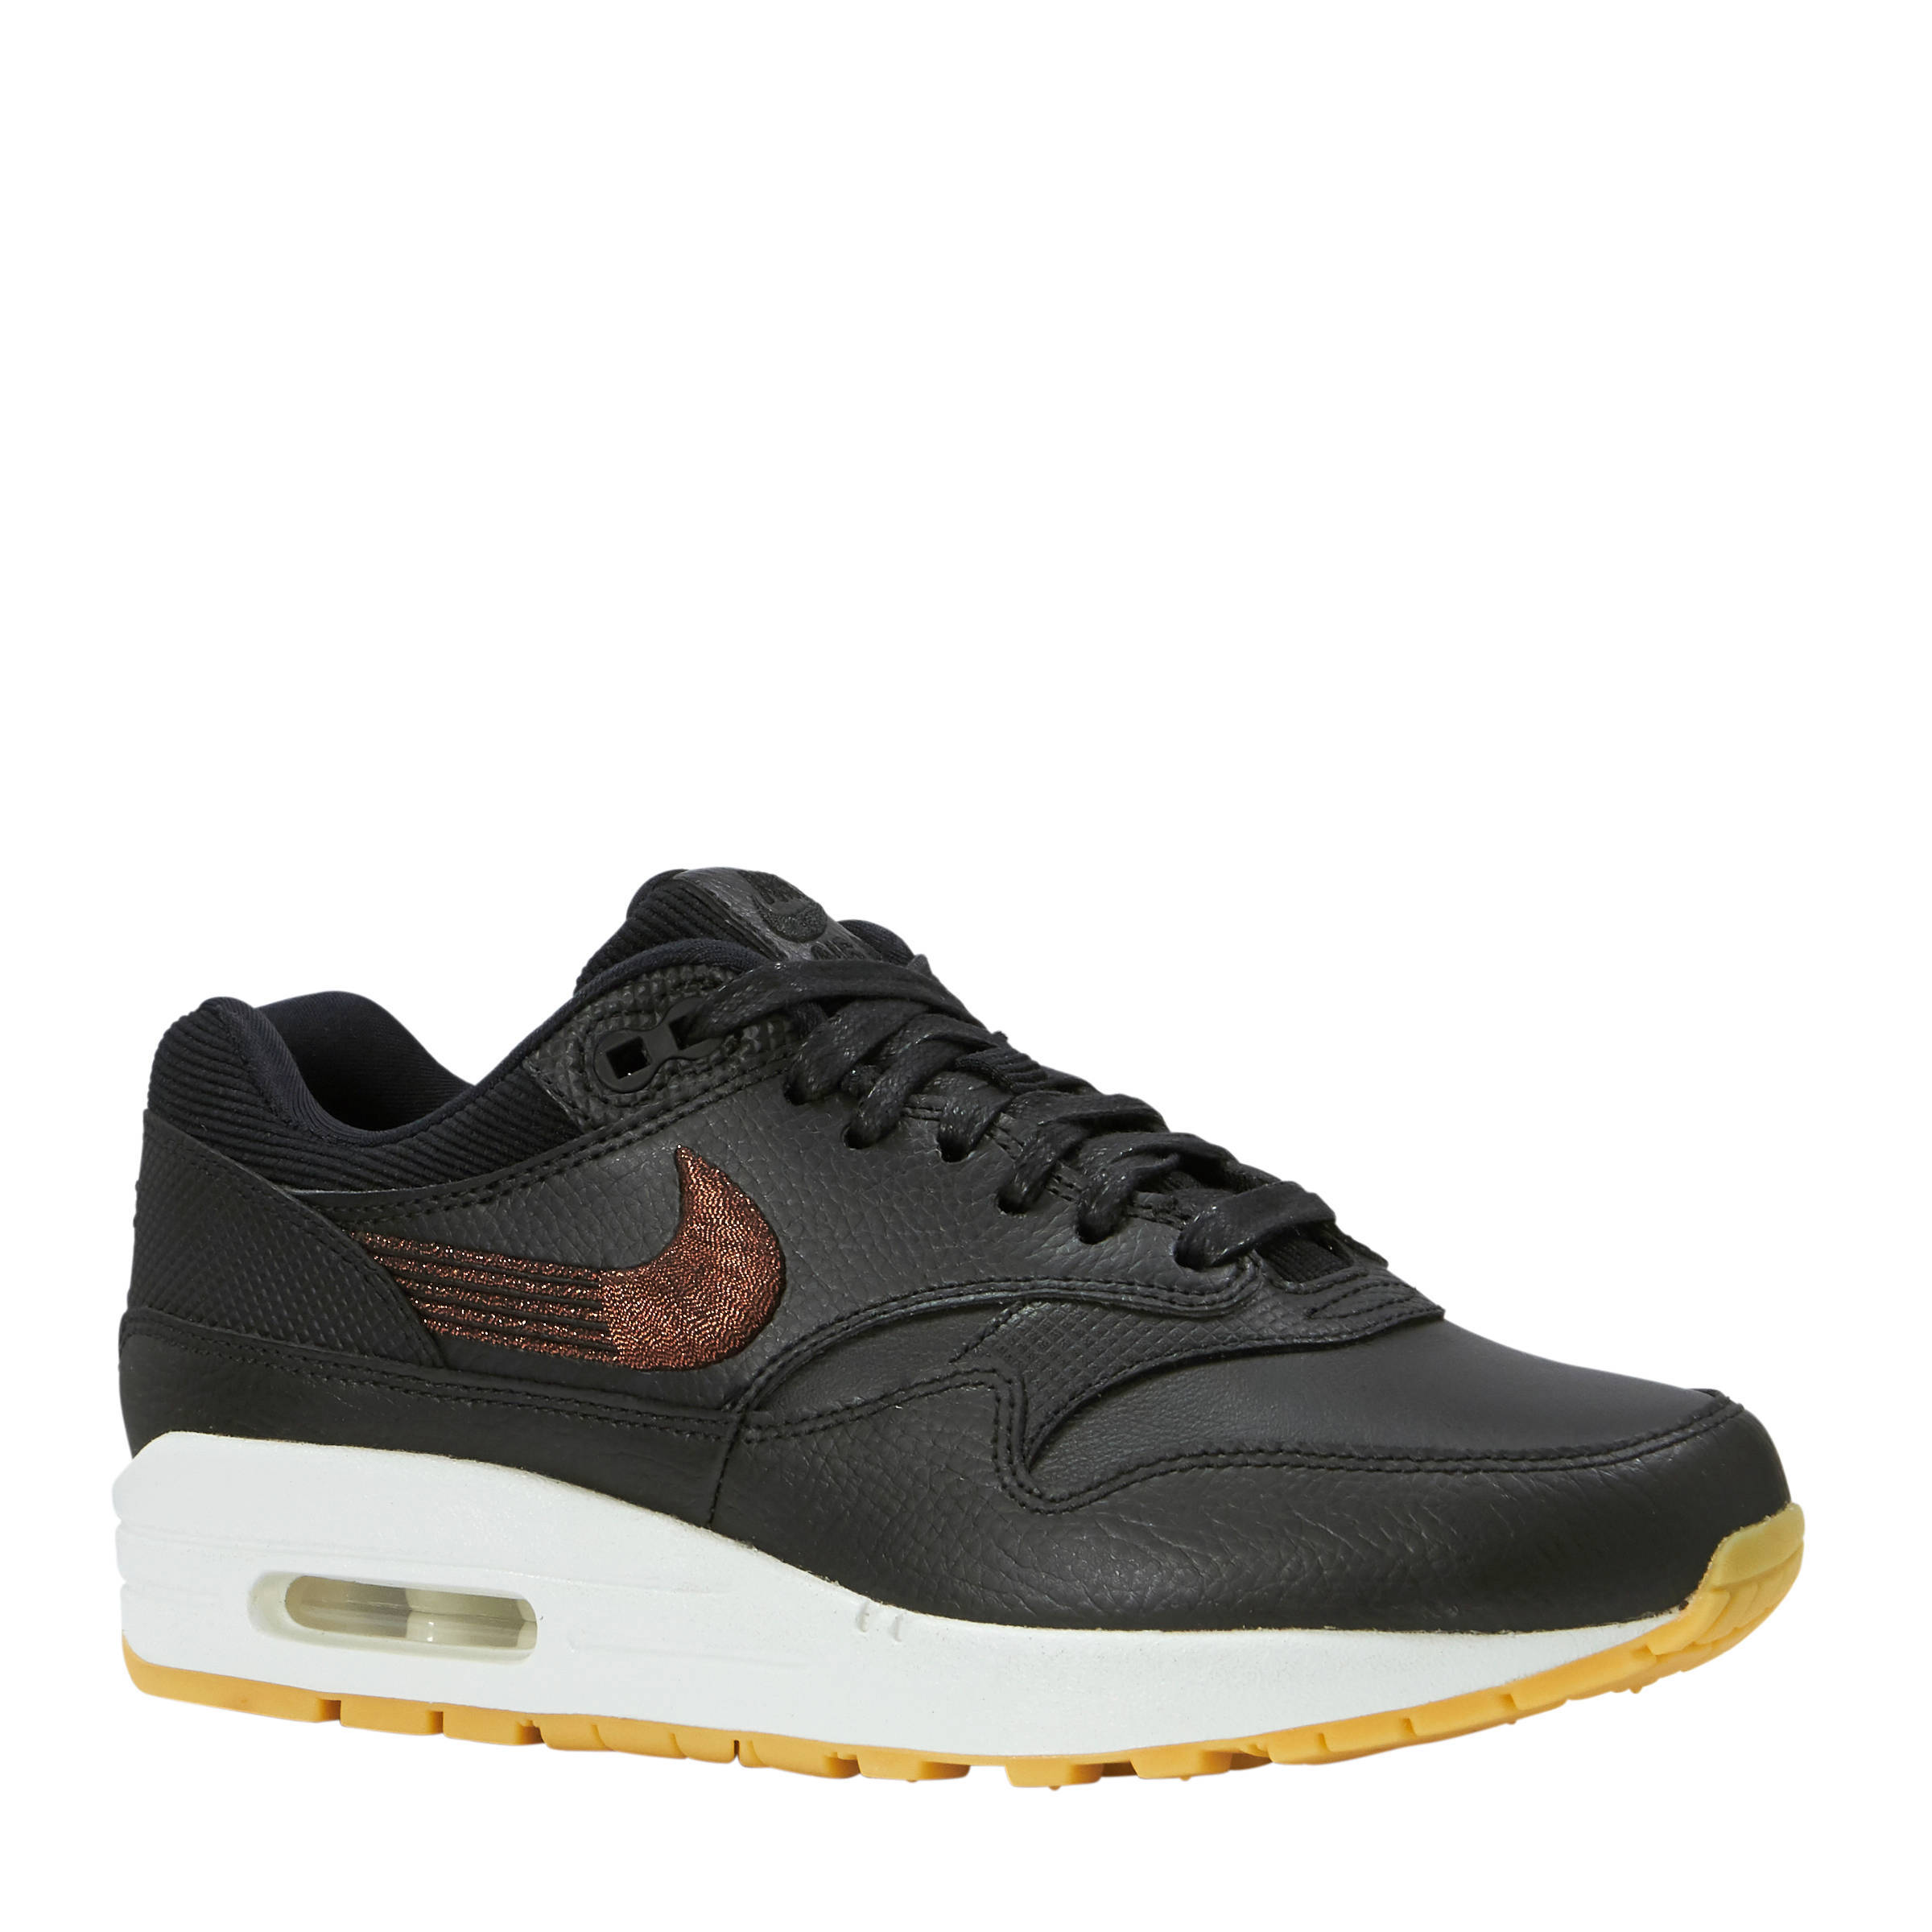 Nike Air Max 1 Premium sneakers beigeoudroze | wehkamp